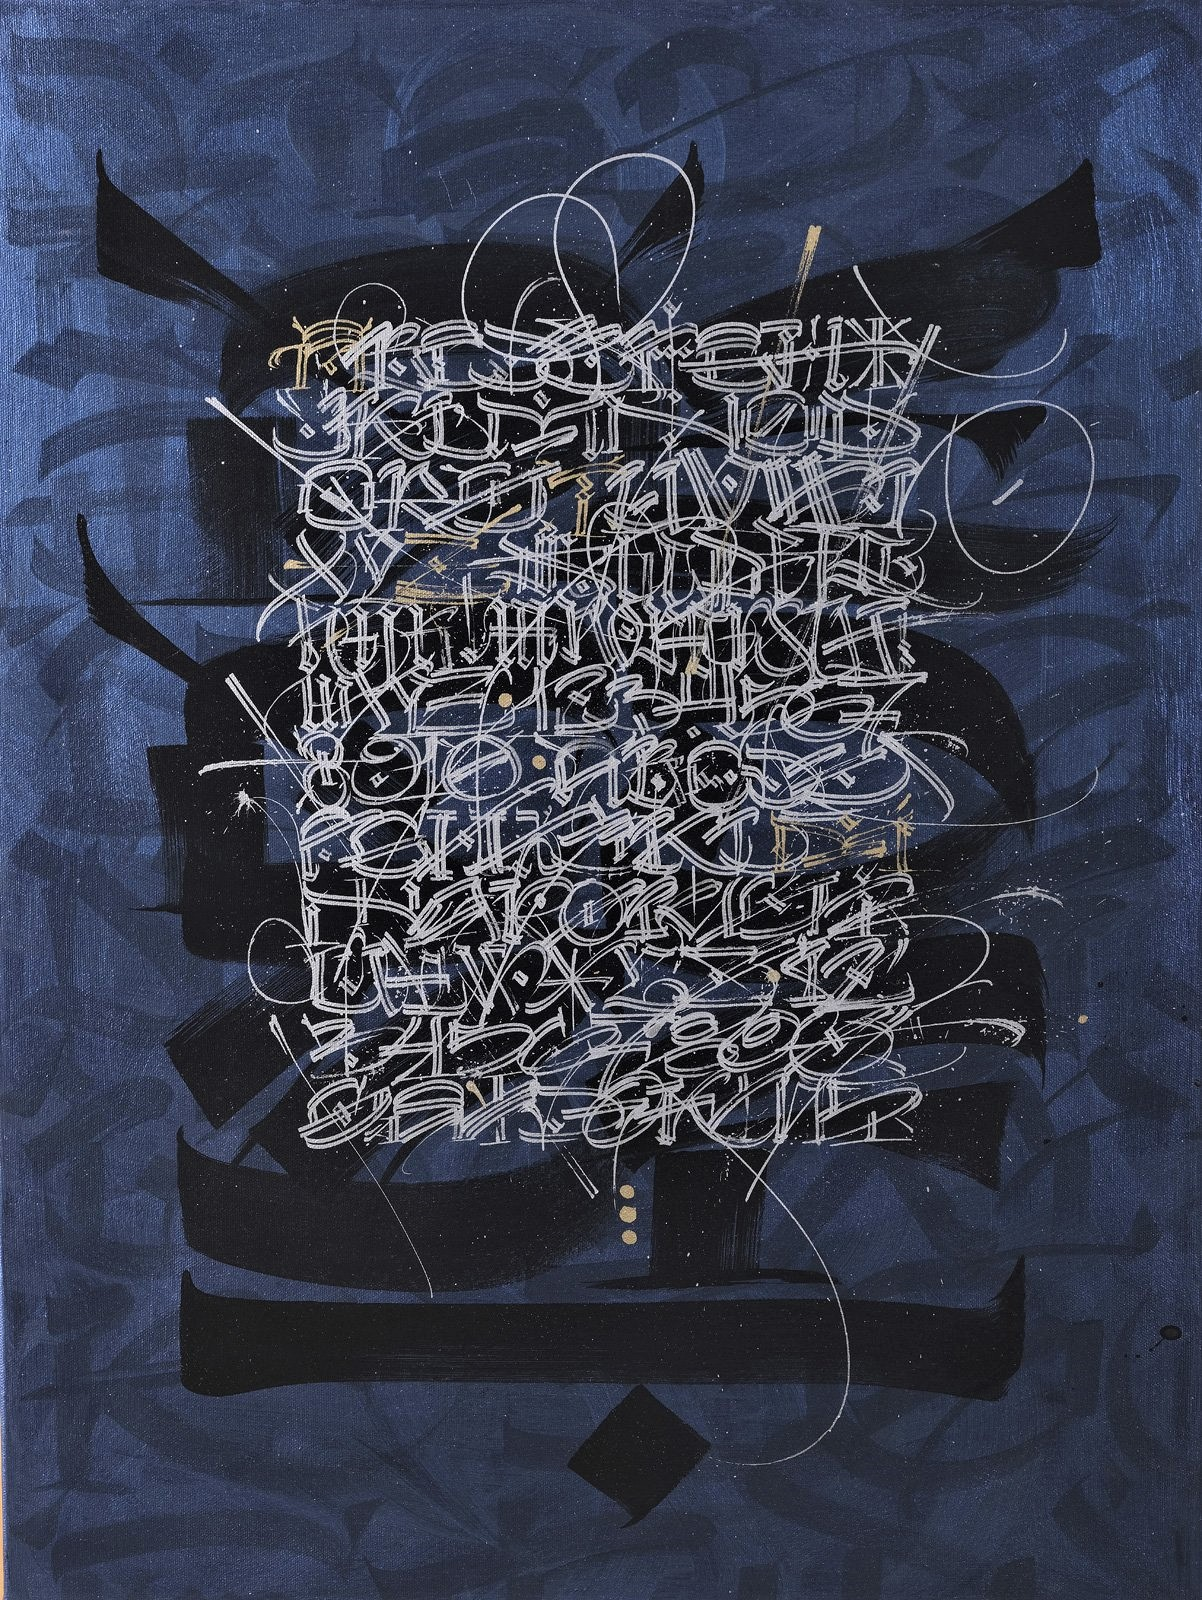 PAINTING SOLD IN AUCTION Crait + Müller Drouot Calligraffiti and Calligraphy by Said Dokins